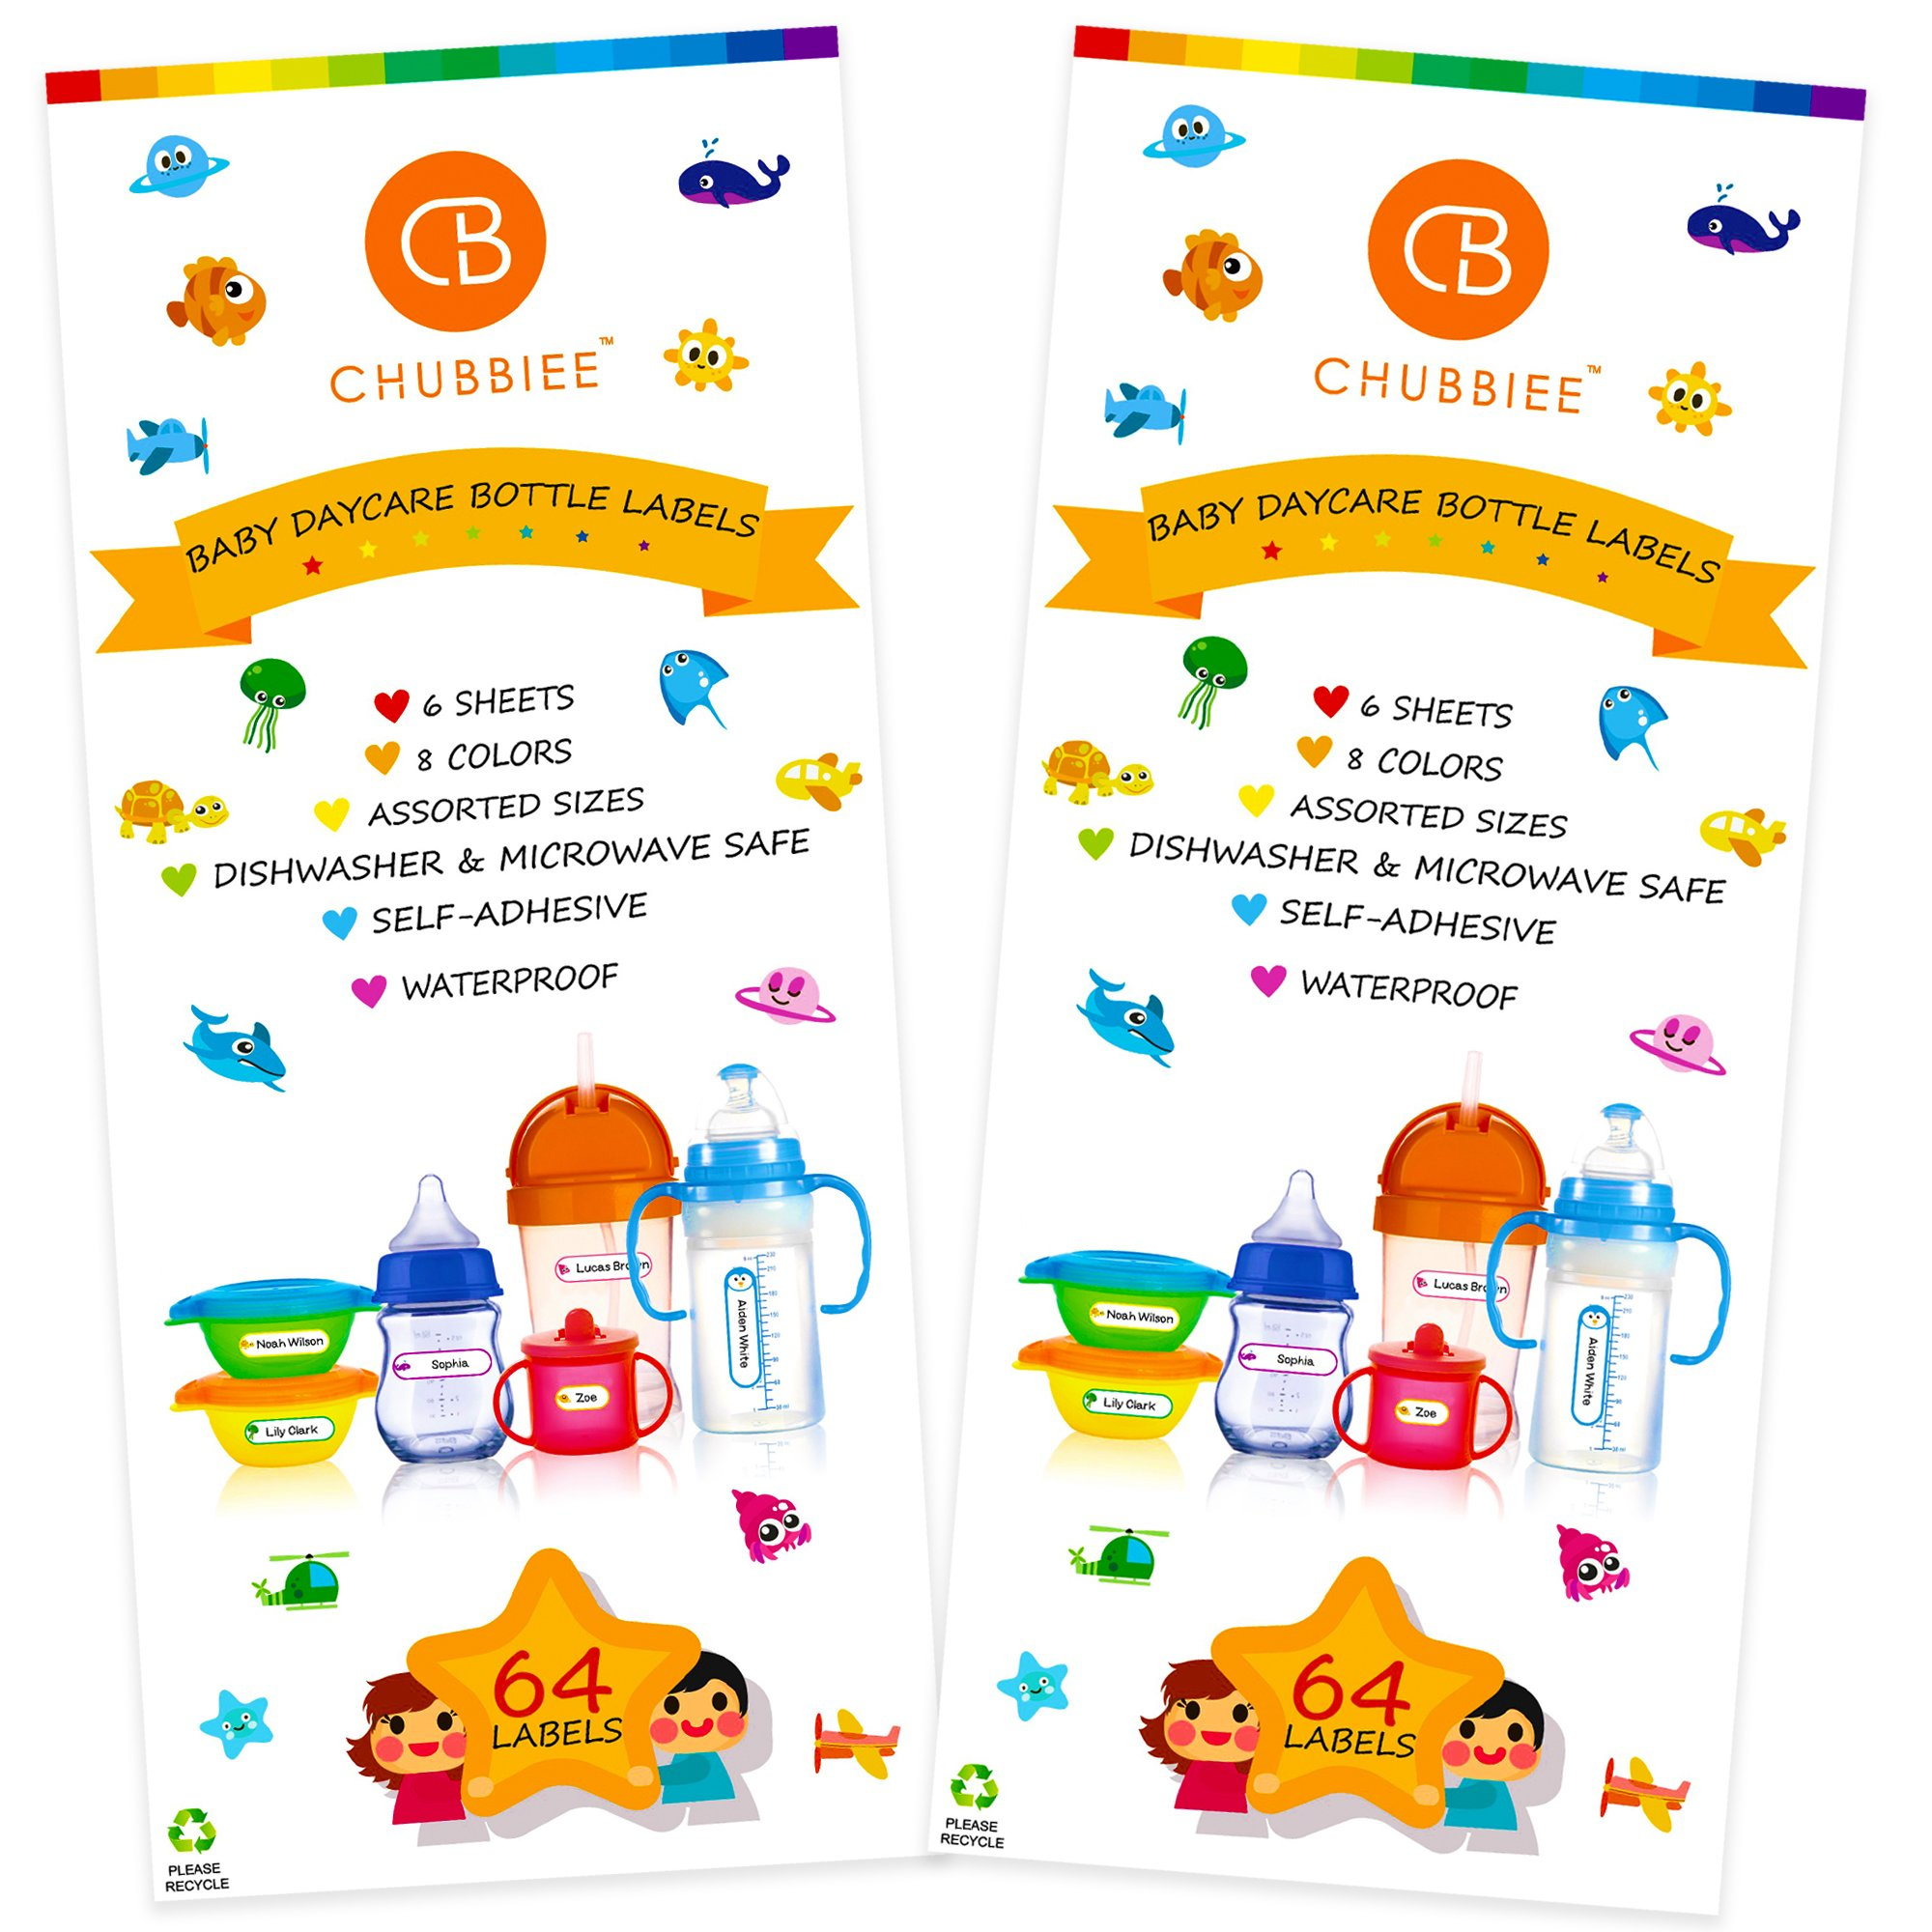 Baby Bottle Labels for Daycare, Self-Laminating, Waterproof Write-On Name Labels, Assorted Sizes & Colors, Pack of 128 by CHUBBIEE